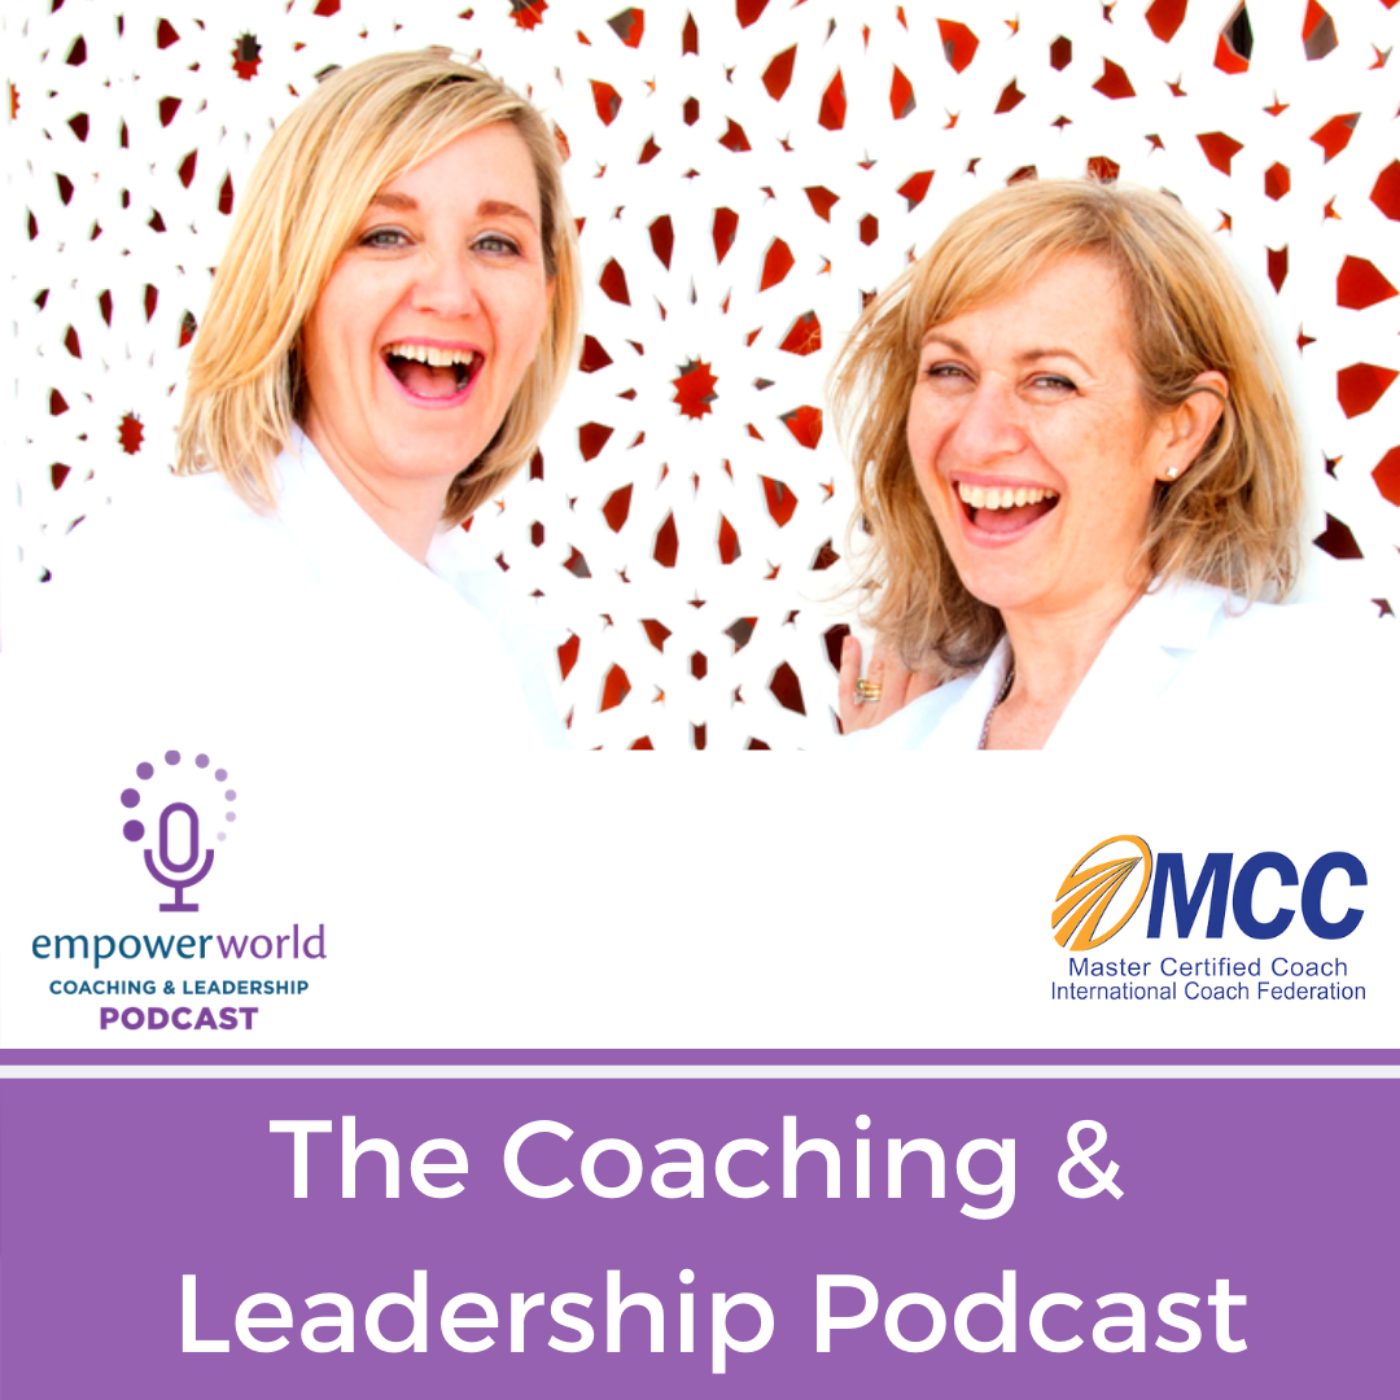 Empower World: The Coaching and Leadership Podcast show art